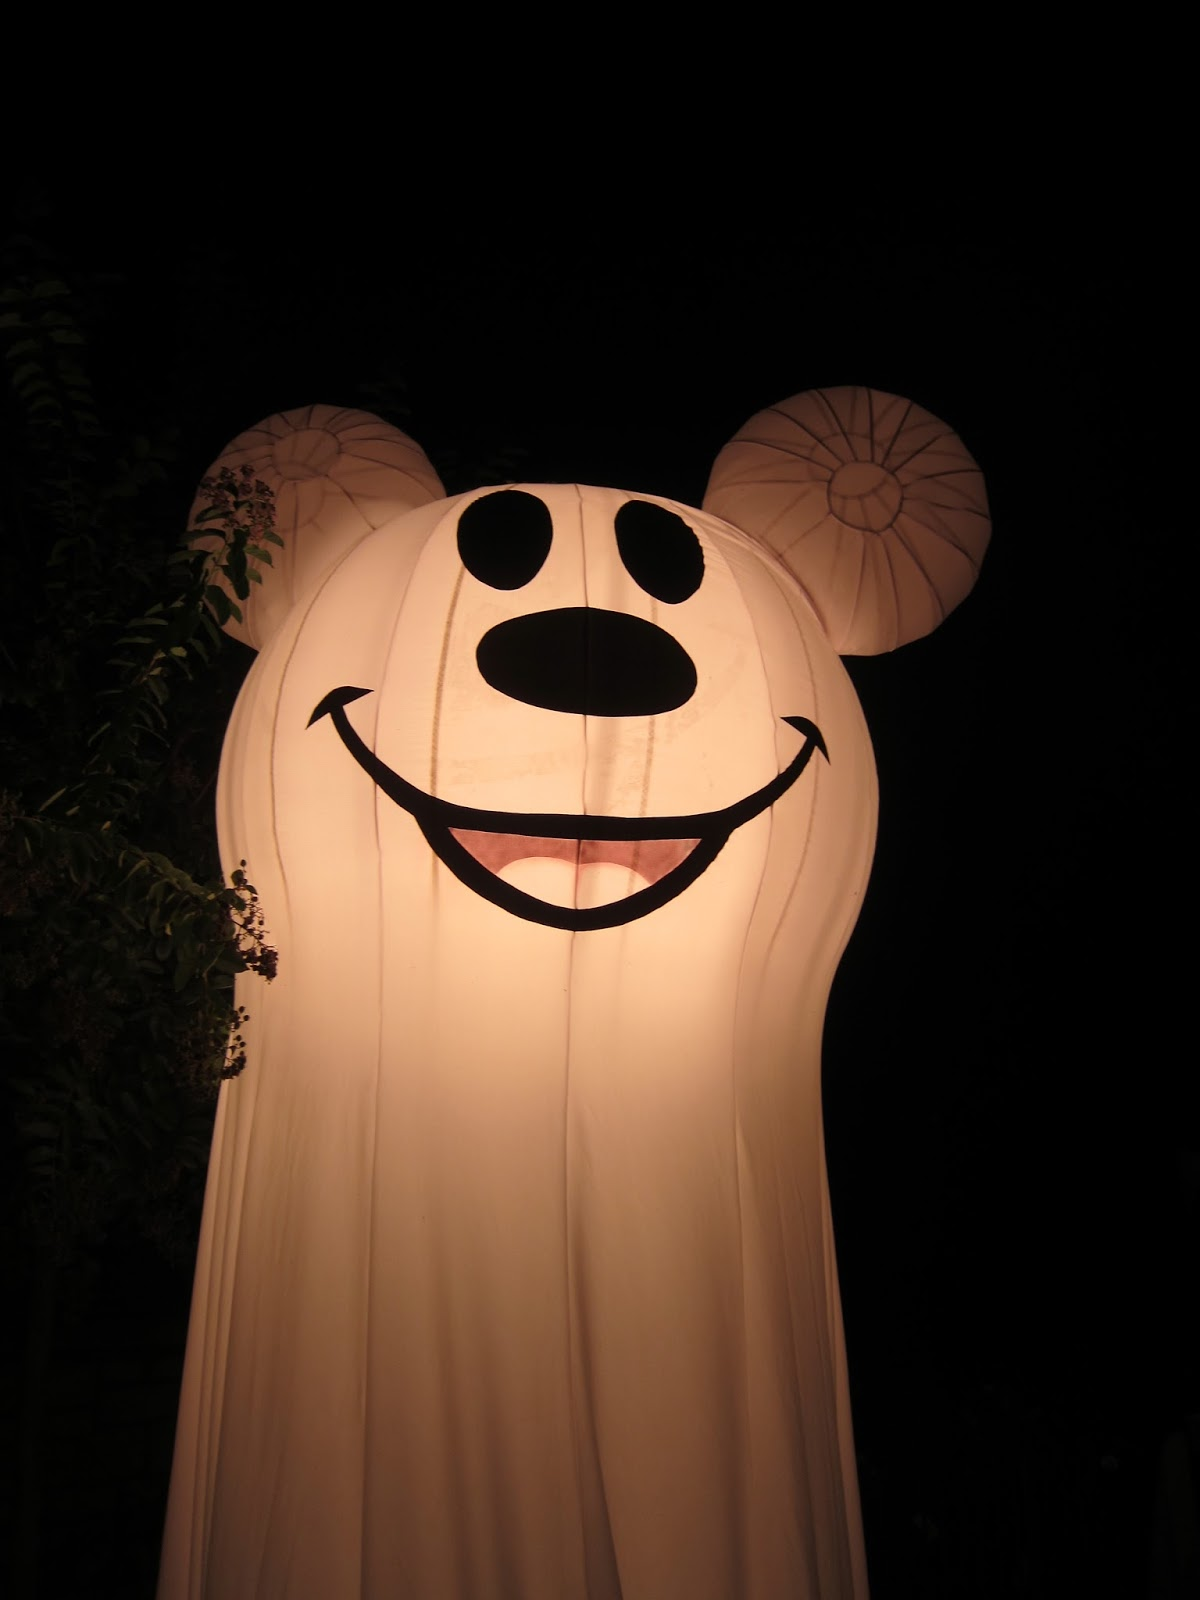 2013 Mickey's Halloween Party Dates Announced - Babes in Disneyland